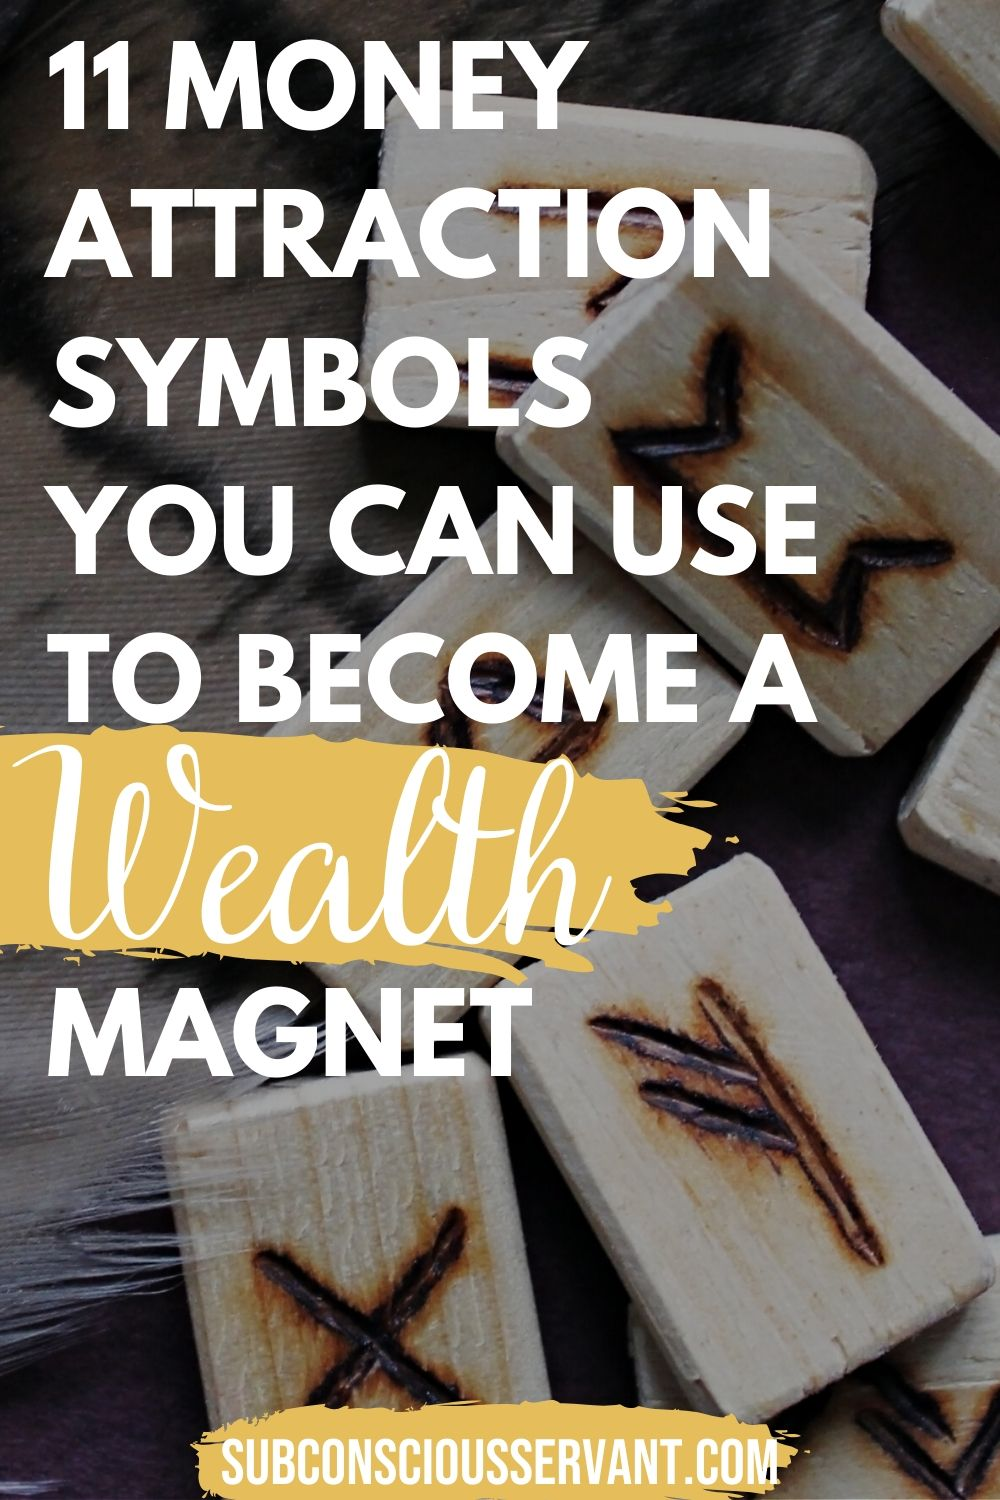 11 Money Attraction Symbols You Can Use To Become A Wealth Magnet